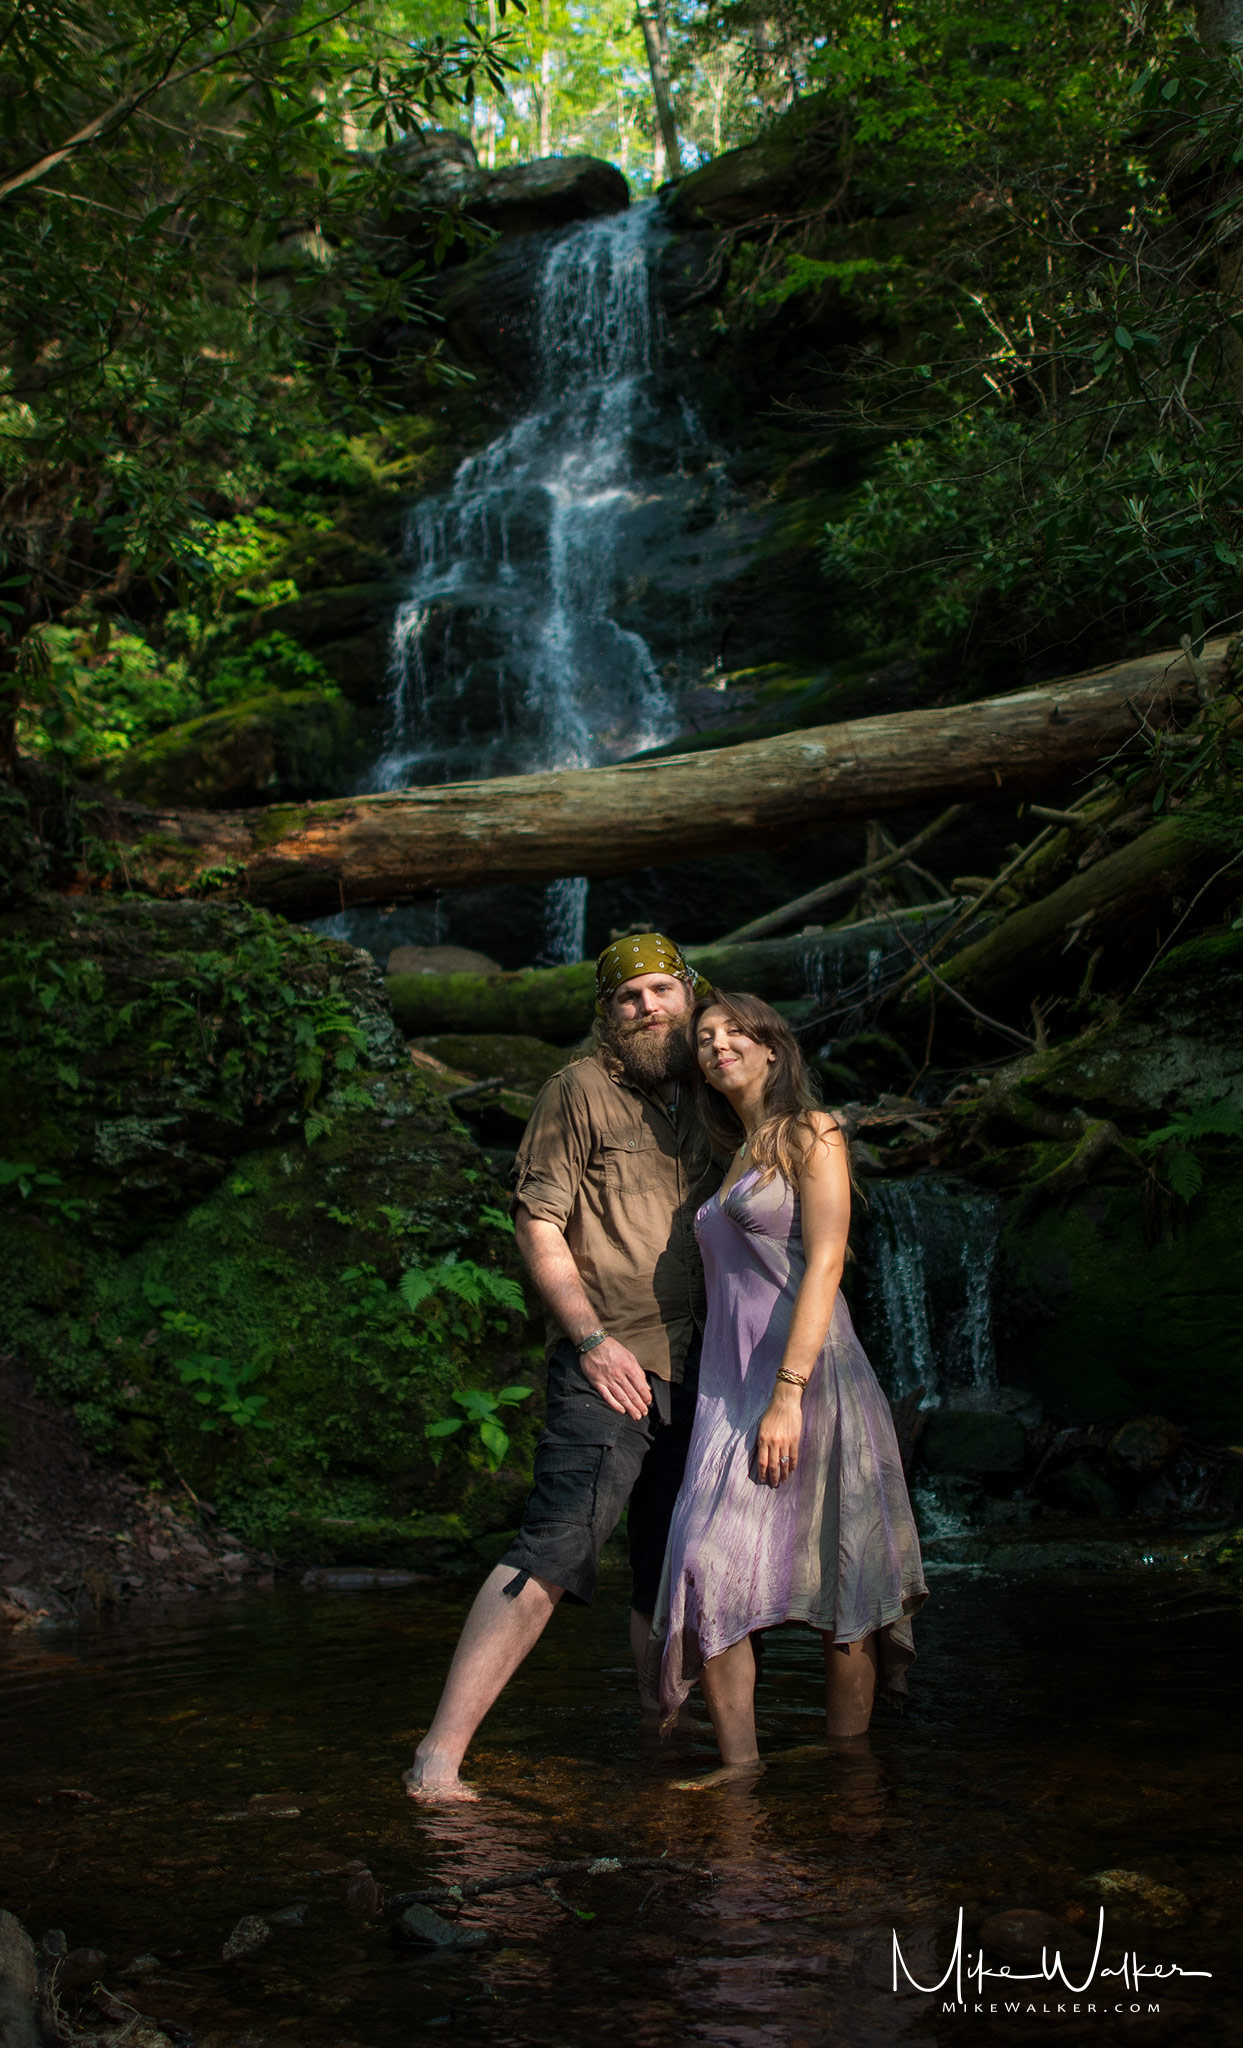 Engagement photos at Buttermilk Falls in NJ. Photography by Mike Walker.